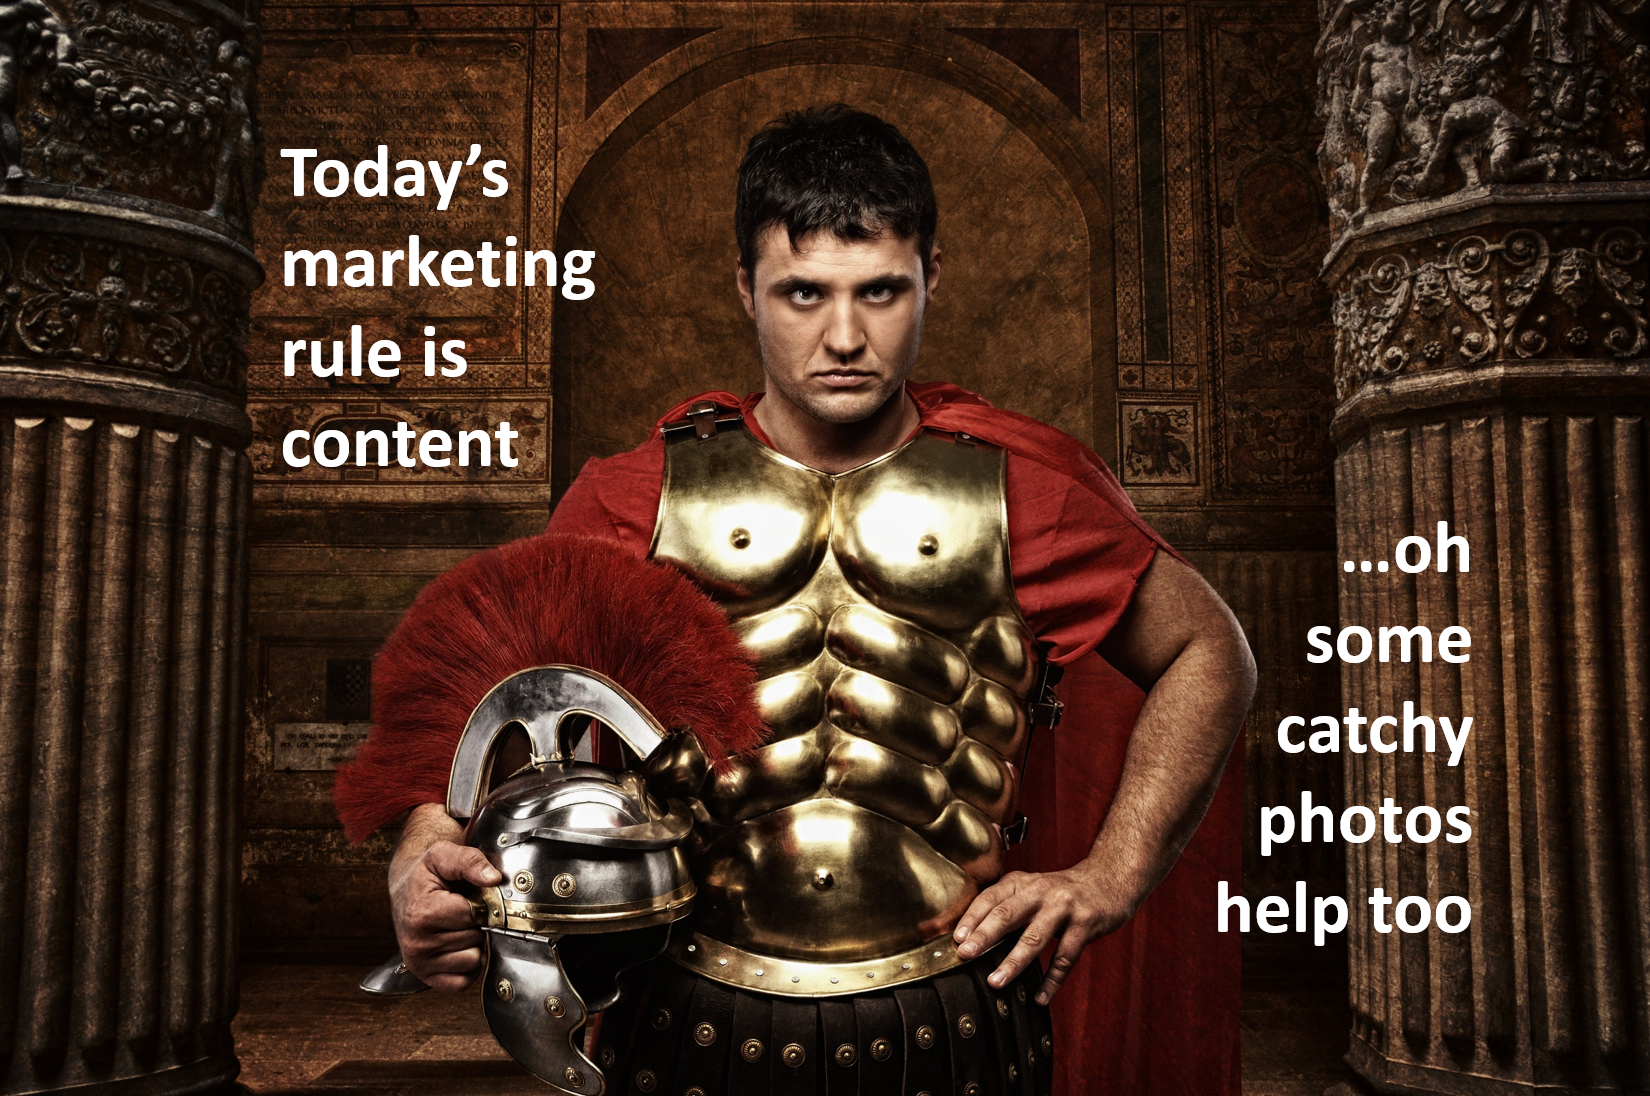 The Startup Business Sales Marketing Content